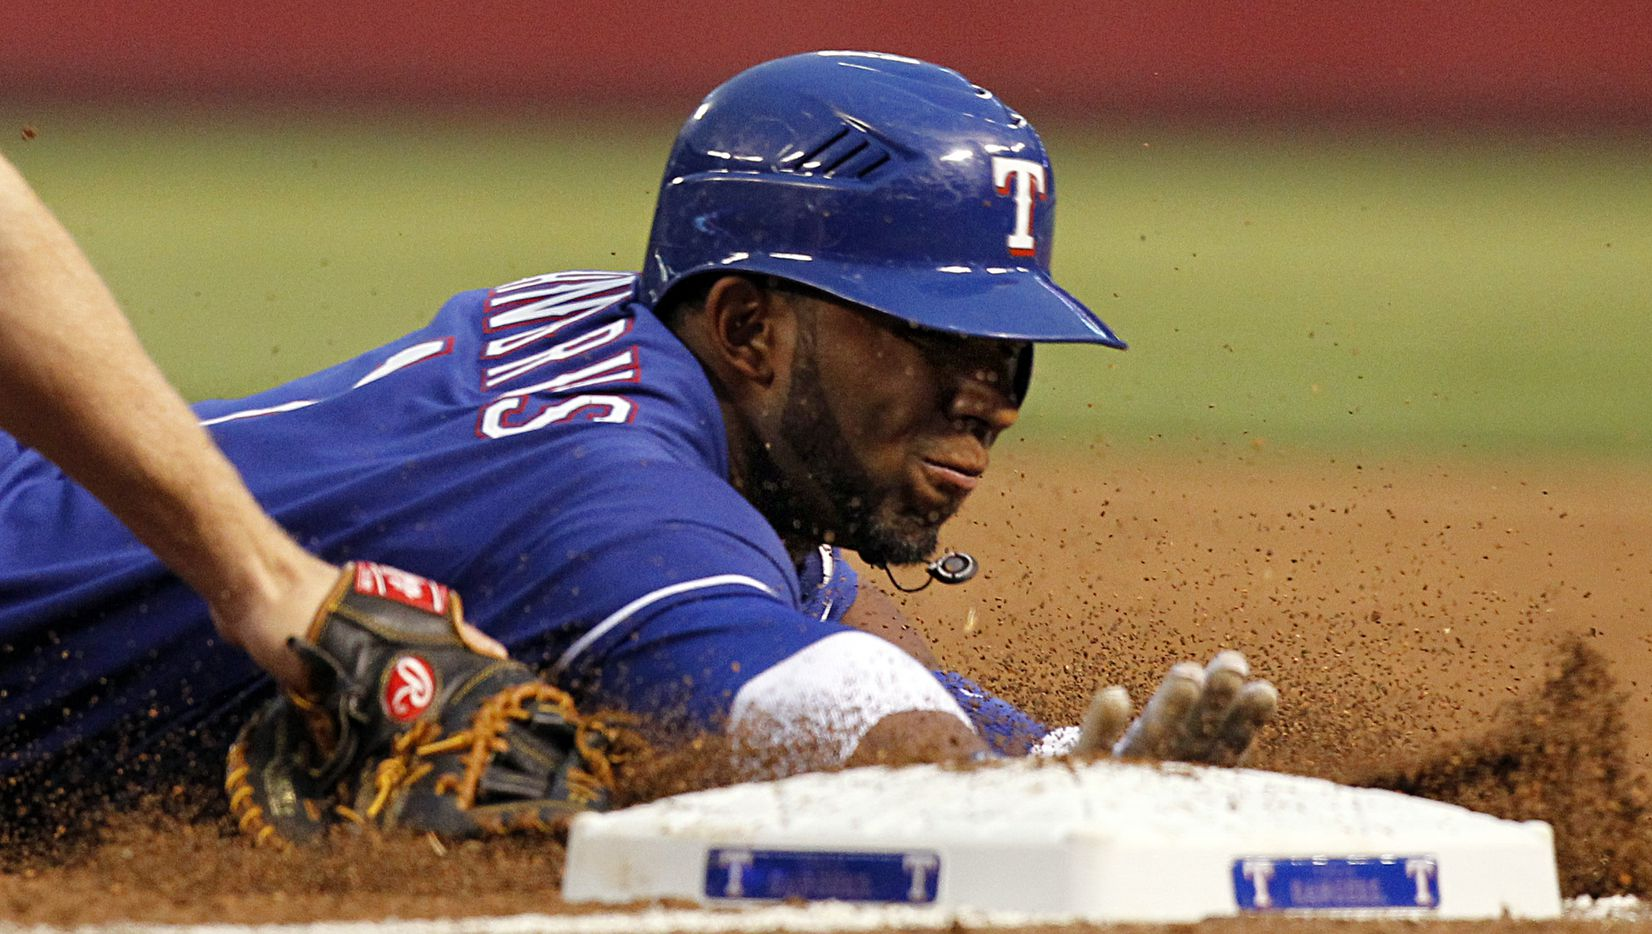 Texas Rangers Elvis Andrus dives back to first just under the tag by Los Angeles Angels first baseman Mark Trumbo in the first inning at the Rangers Ballpark in Arlington, Wednesday, April 20, 2011. Andrus was picked off shortly thereafter. (Tom Fox/The Dallas Morning News)